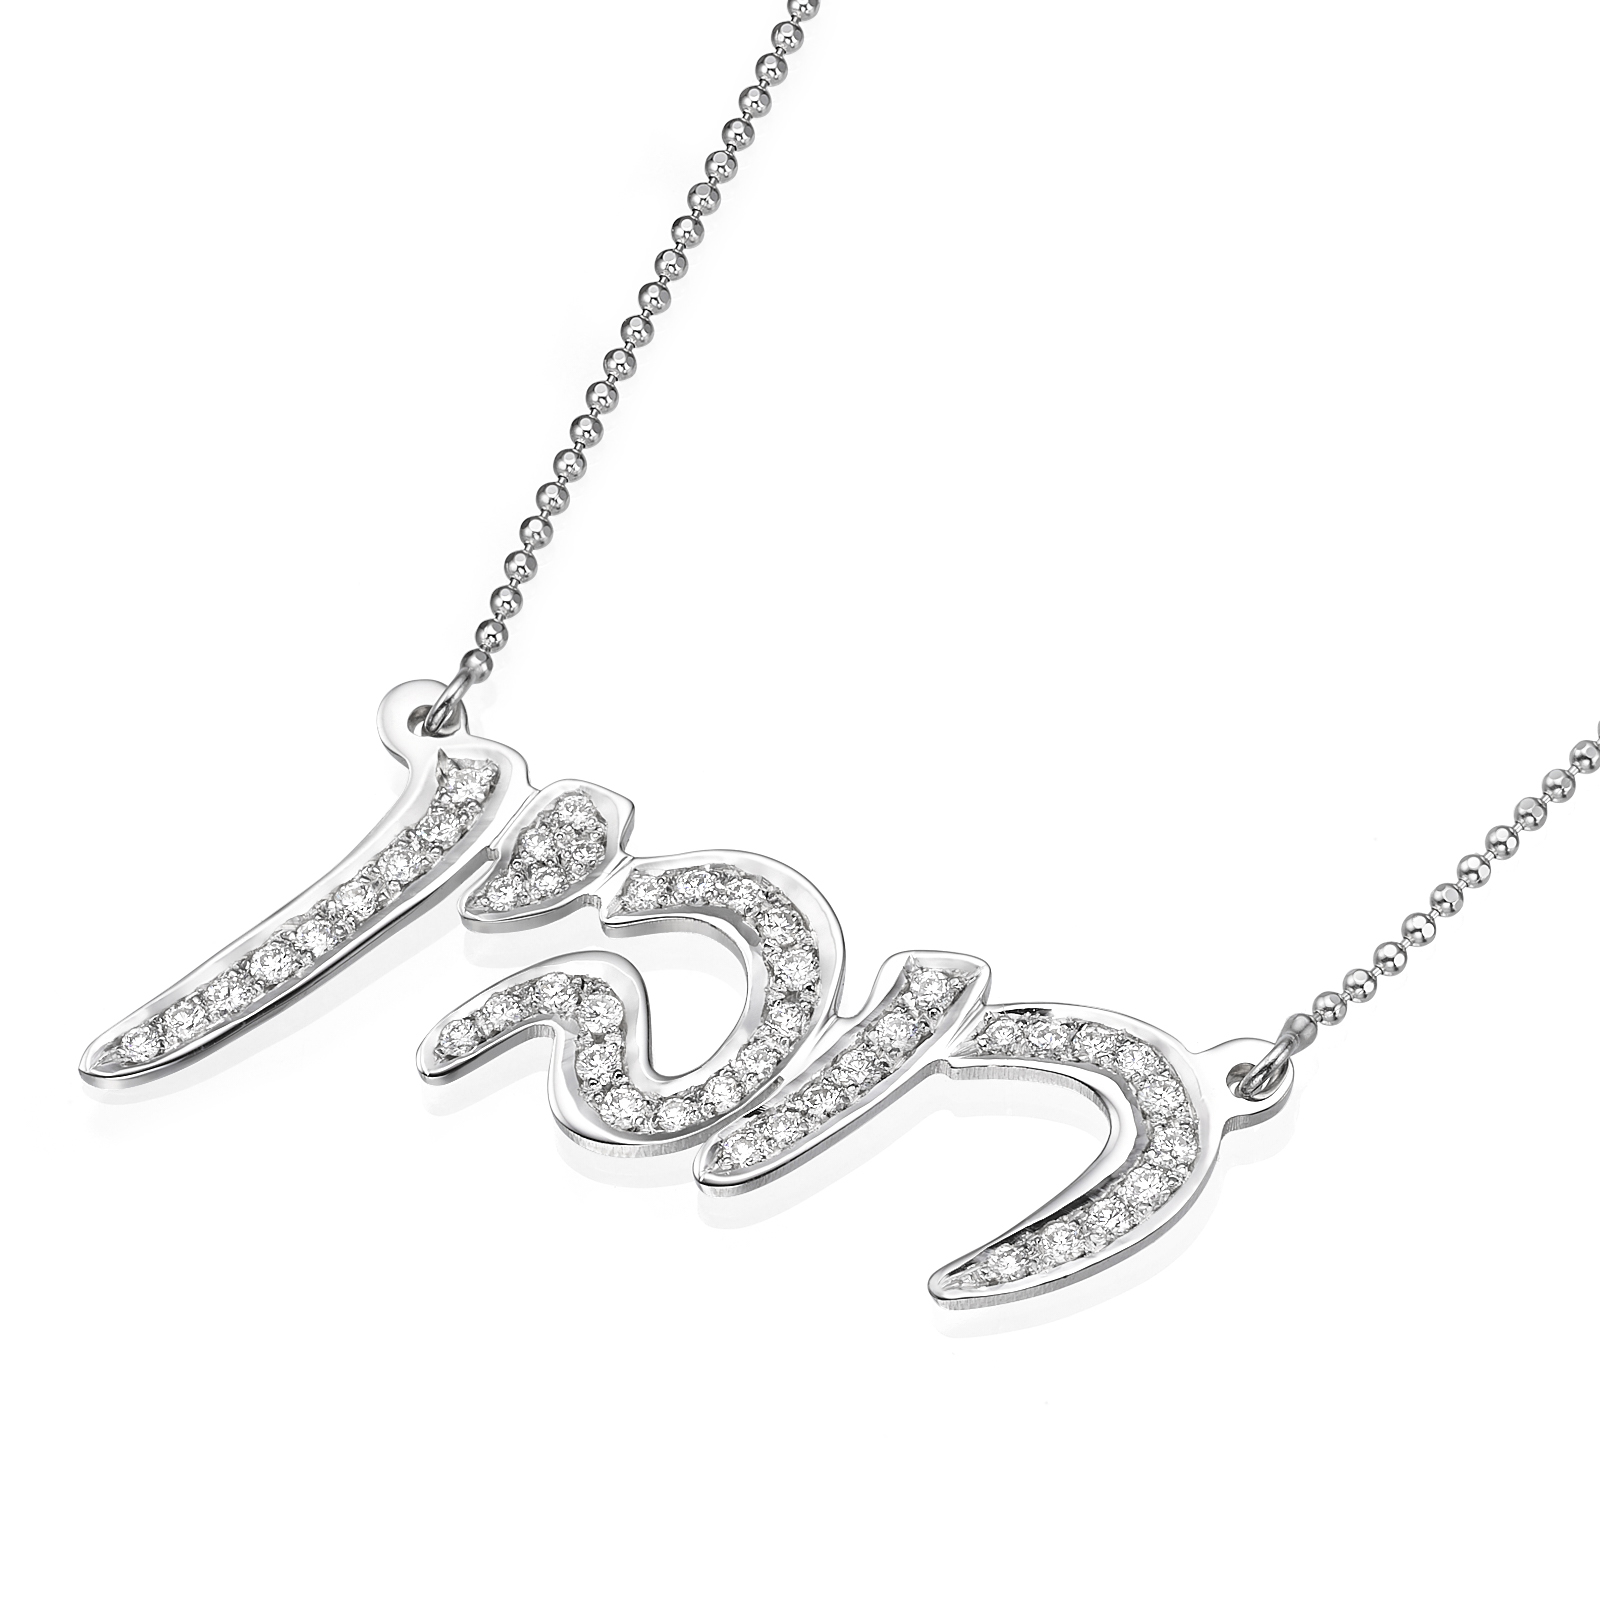 Hebrew Script Diamond Name Necklace - White Gold - Baltinester Jewelry